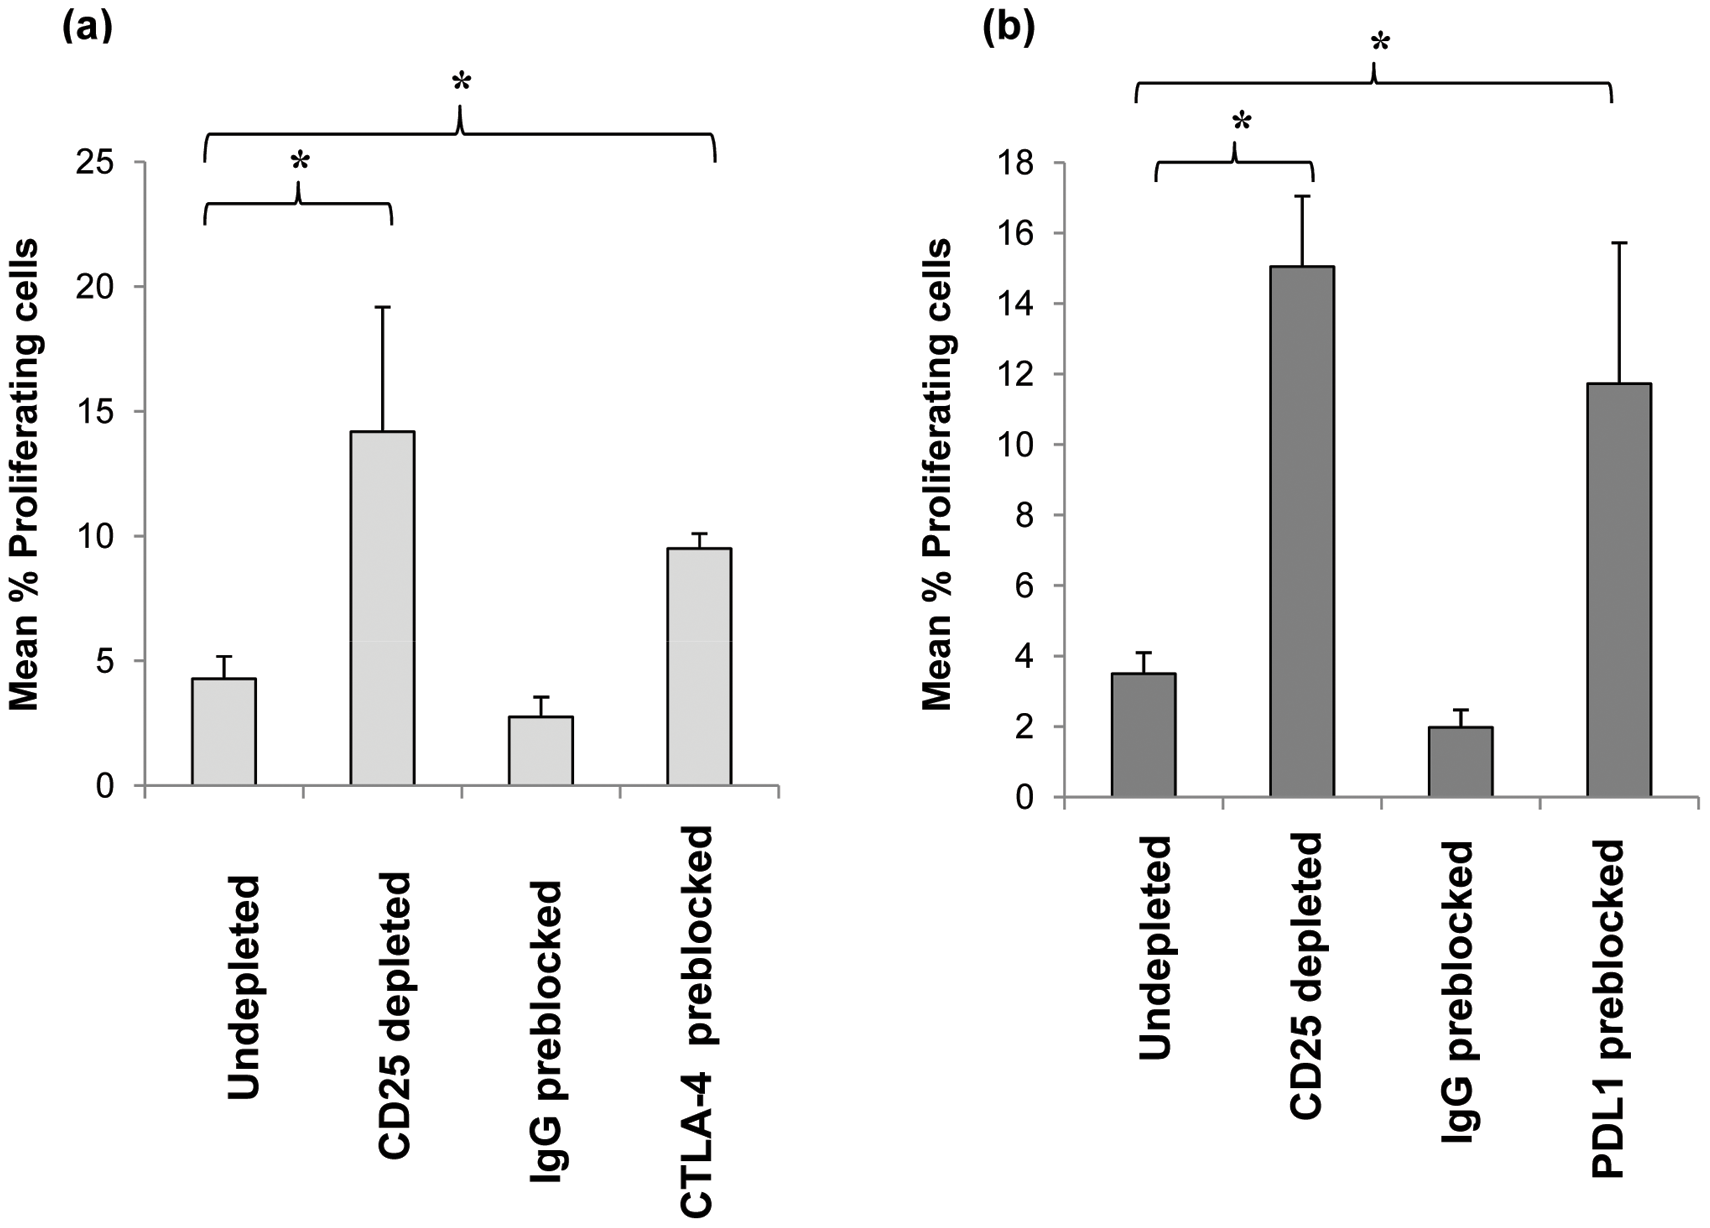 Effect of blockage of CTLA-4 and PDL-1 on CD25<sup>hi</sup> cells their suppression of anti-pneumococcal proliferative responses by CD4<sup>+</sup> cells.